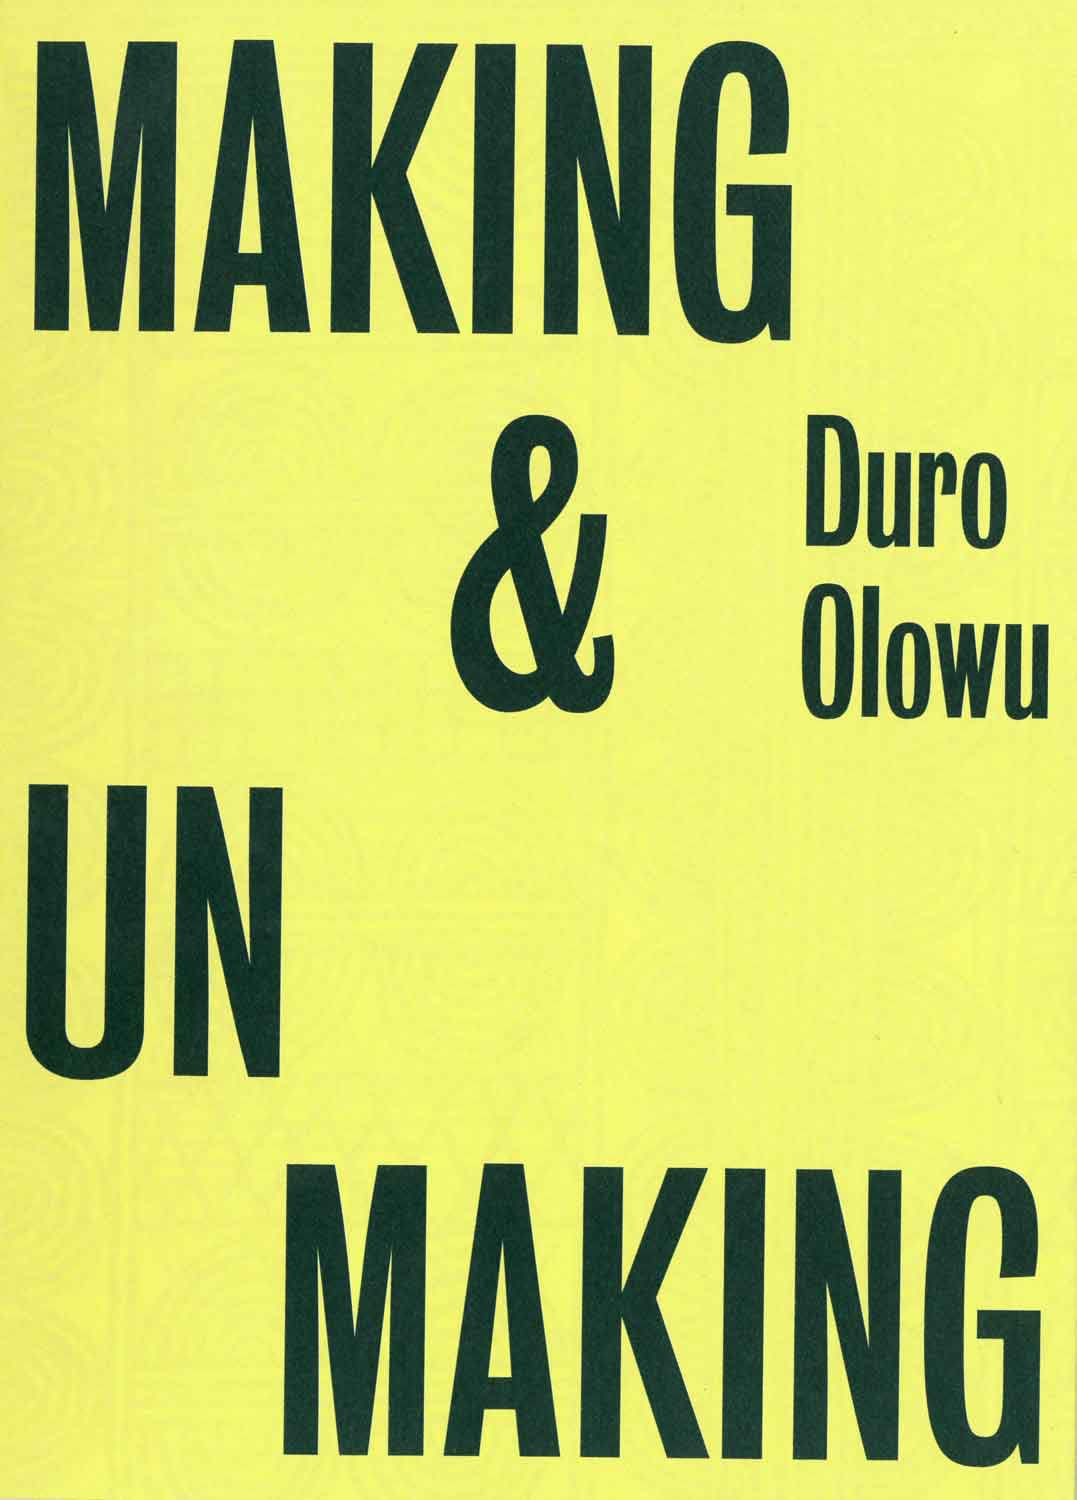 Making & Unmaking, curated by Duro Olowu